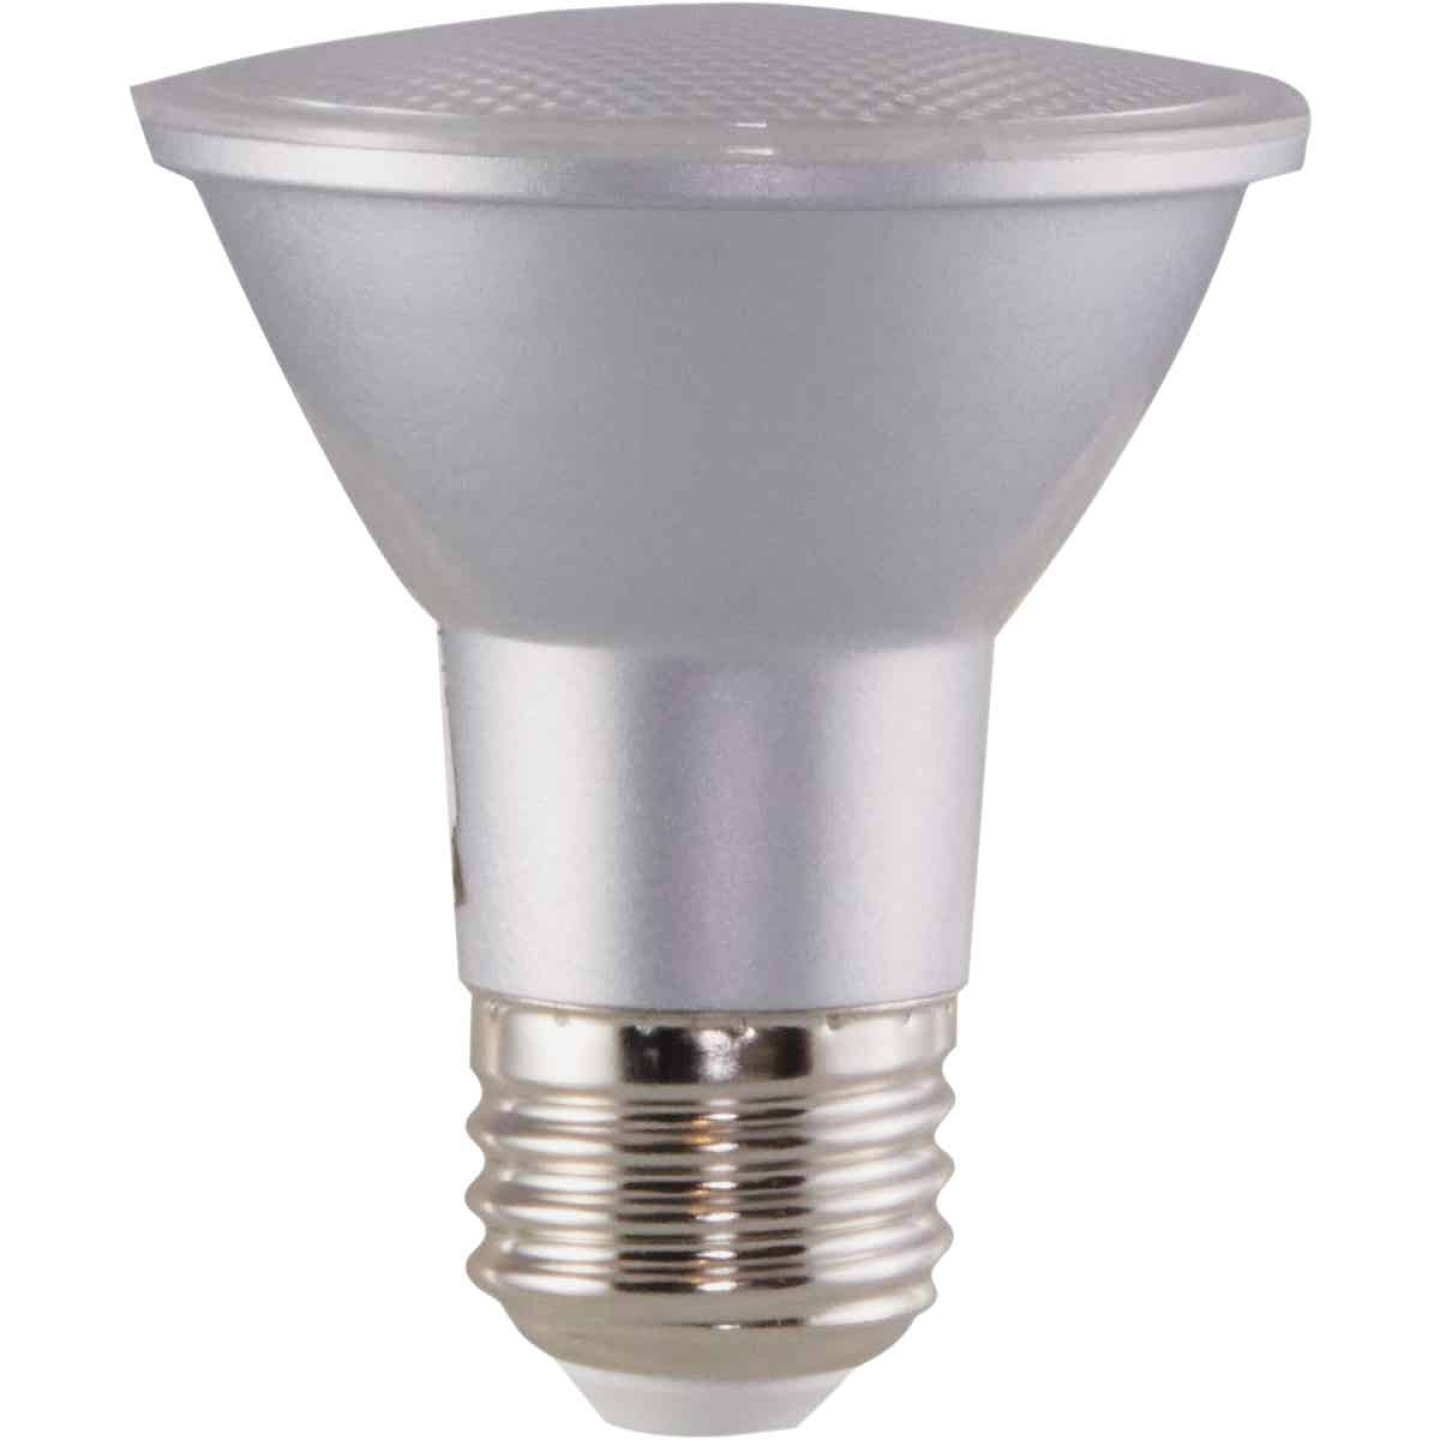 Satco 50W Equivalent Daylight PAR20 Medium Dimmable LED Floodlight Light Bulb Image 4